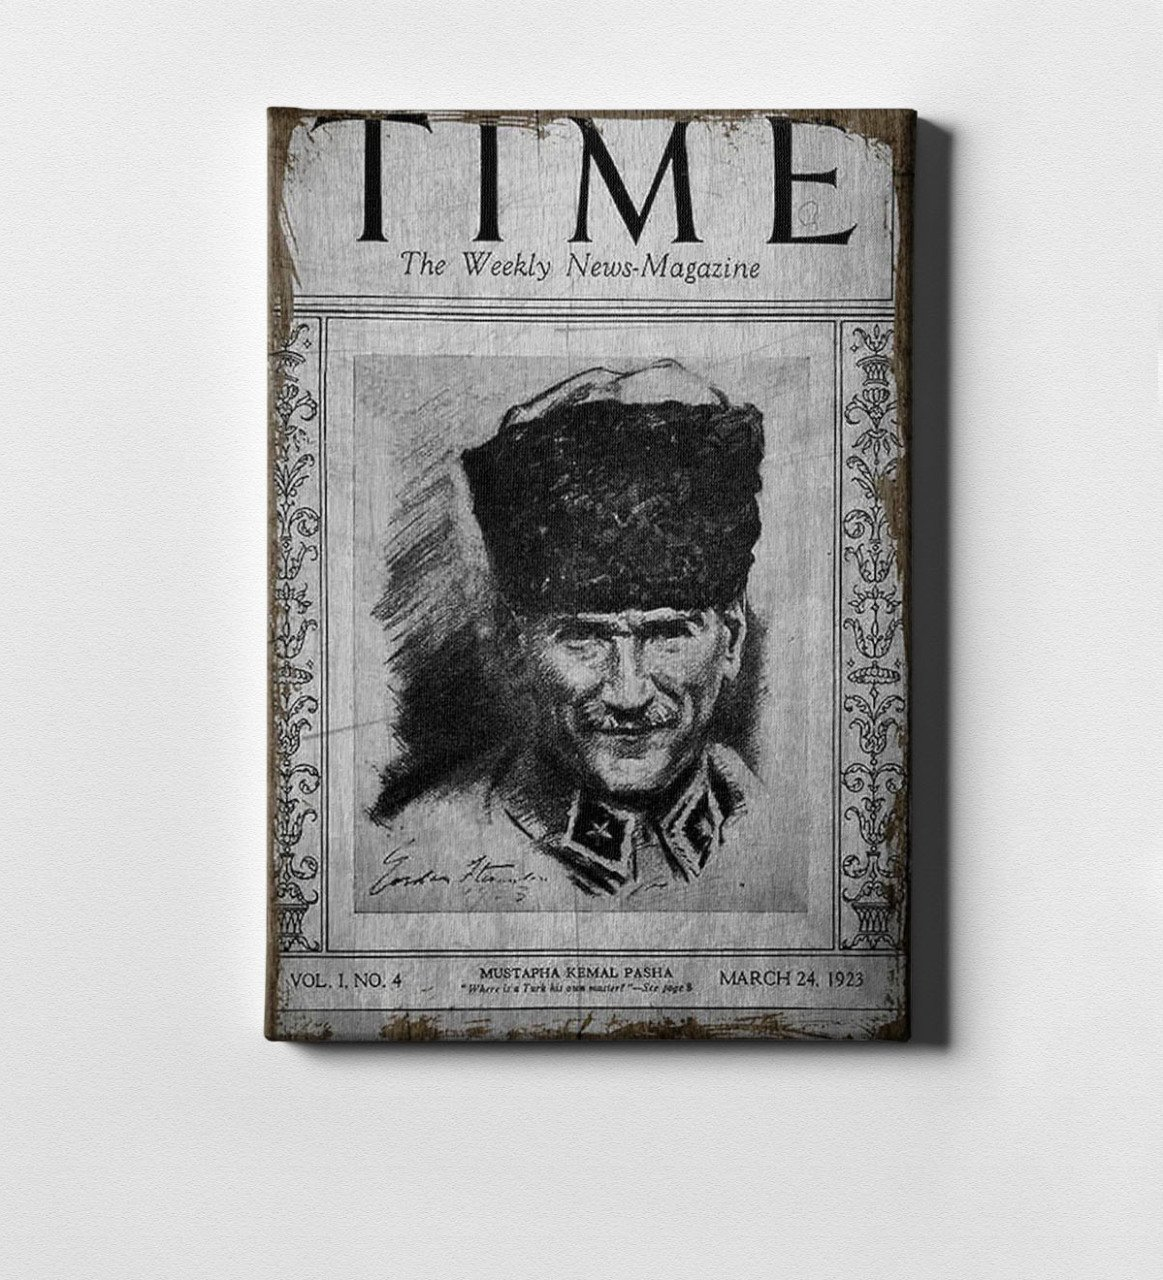 Personalized Ataturk Time Magazine Cover Canvas Print (50x70 Cm.)